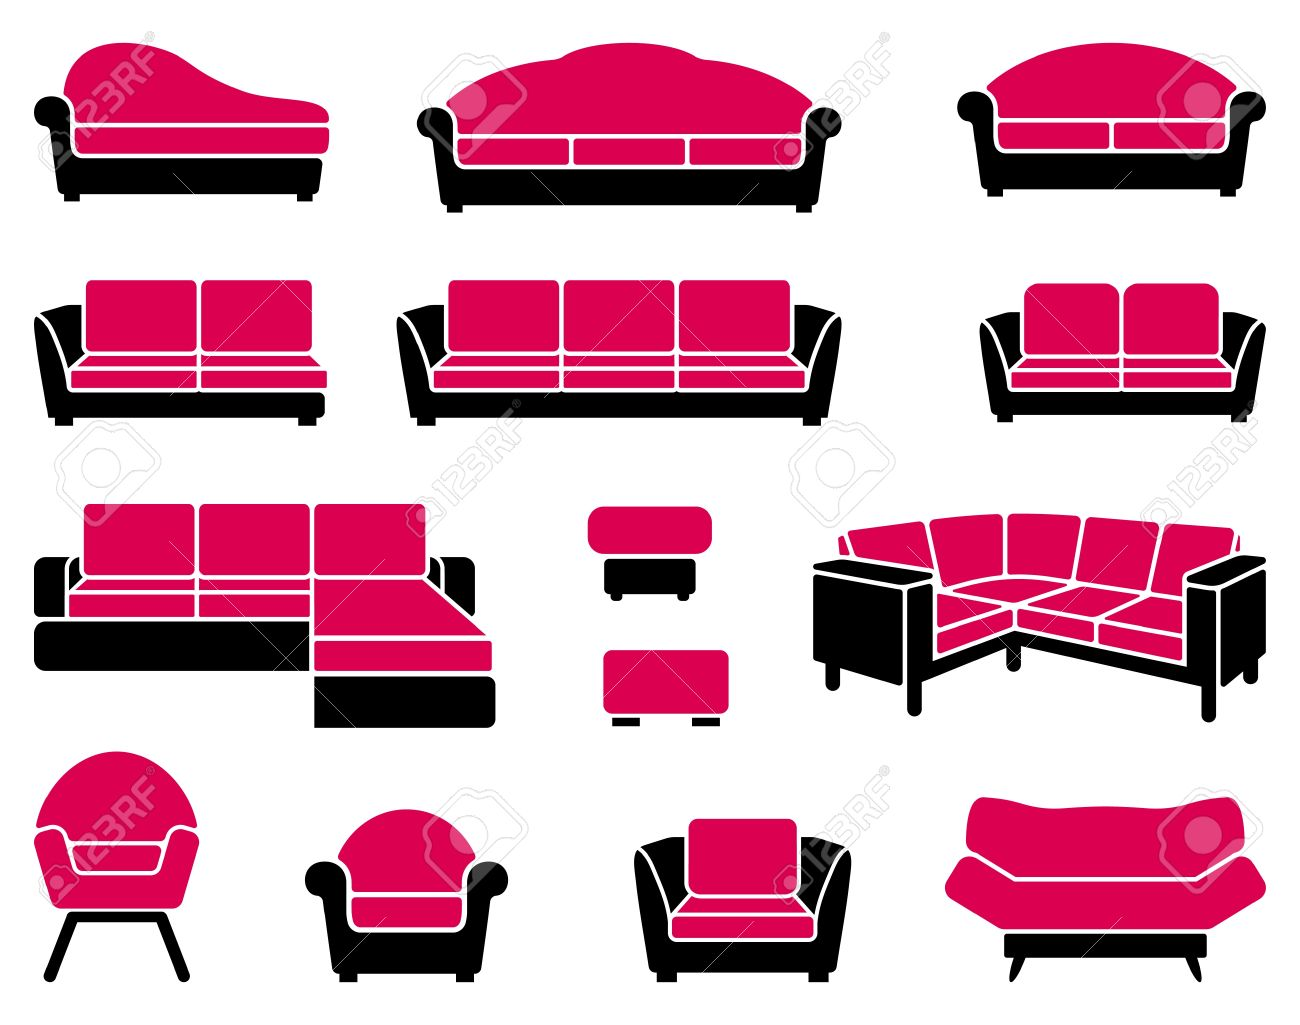 Armchairs and sofas Stock Vector - 16456899